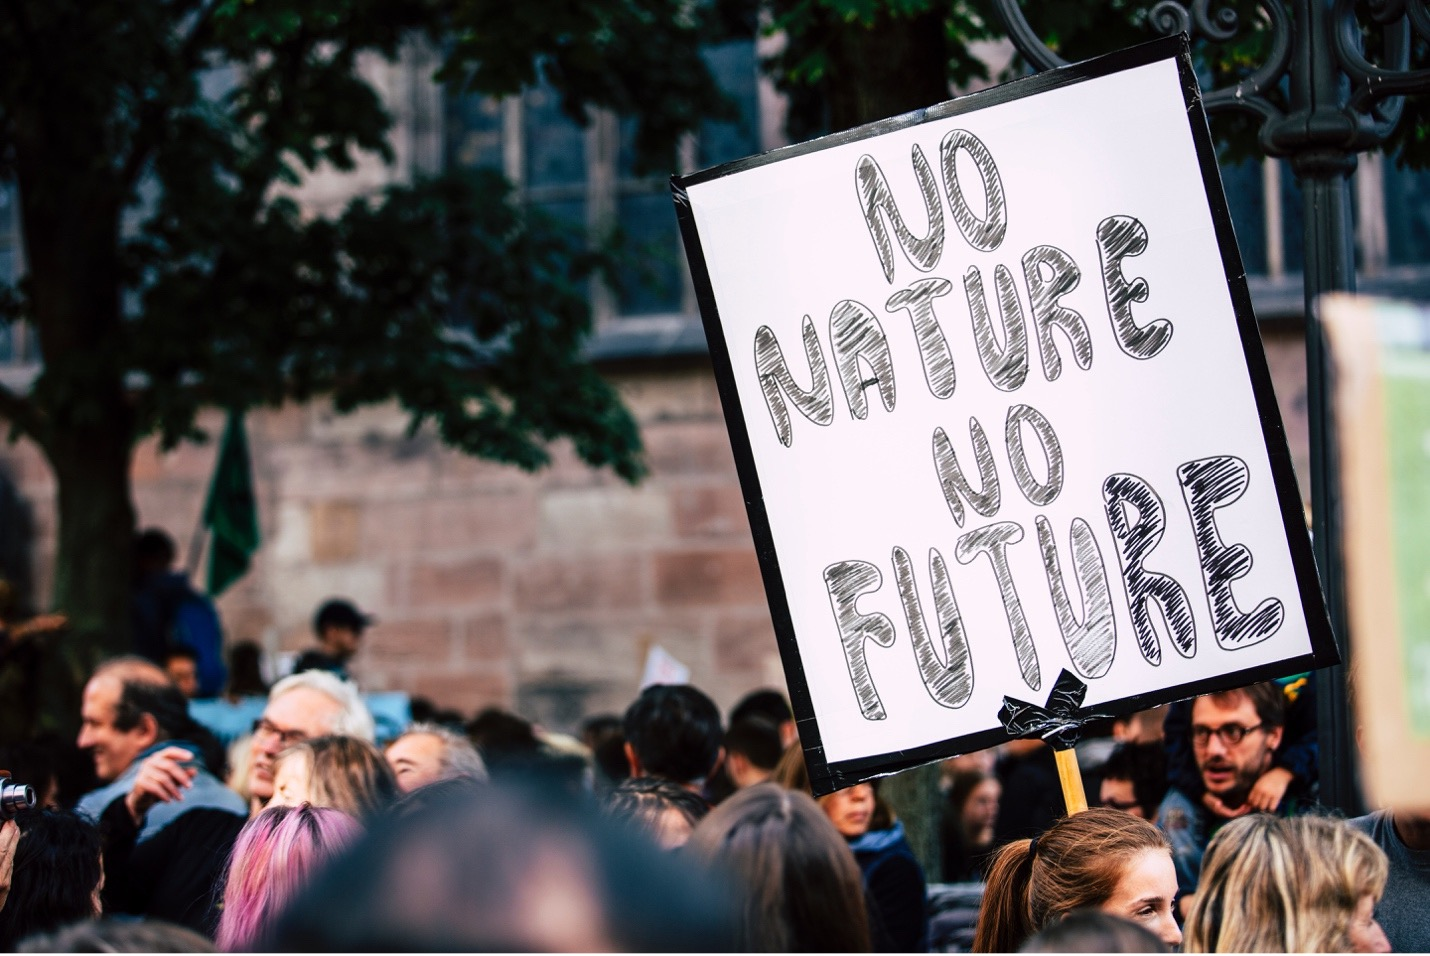 Climate action without bold biodiversity protection is an illusion of progress